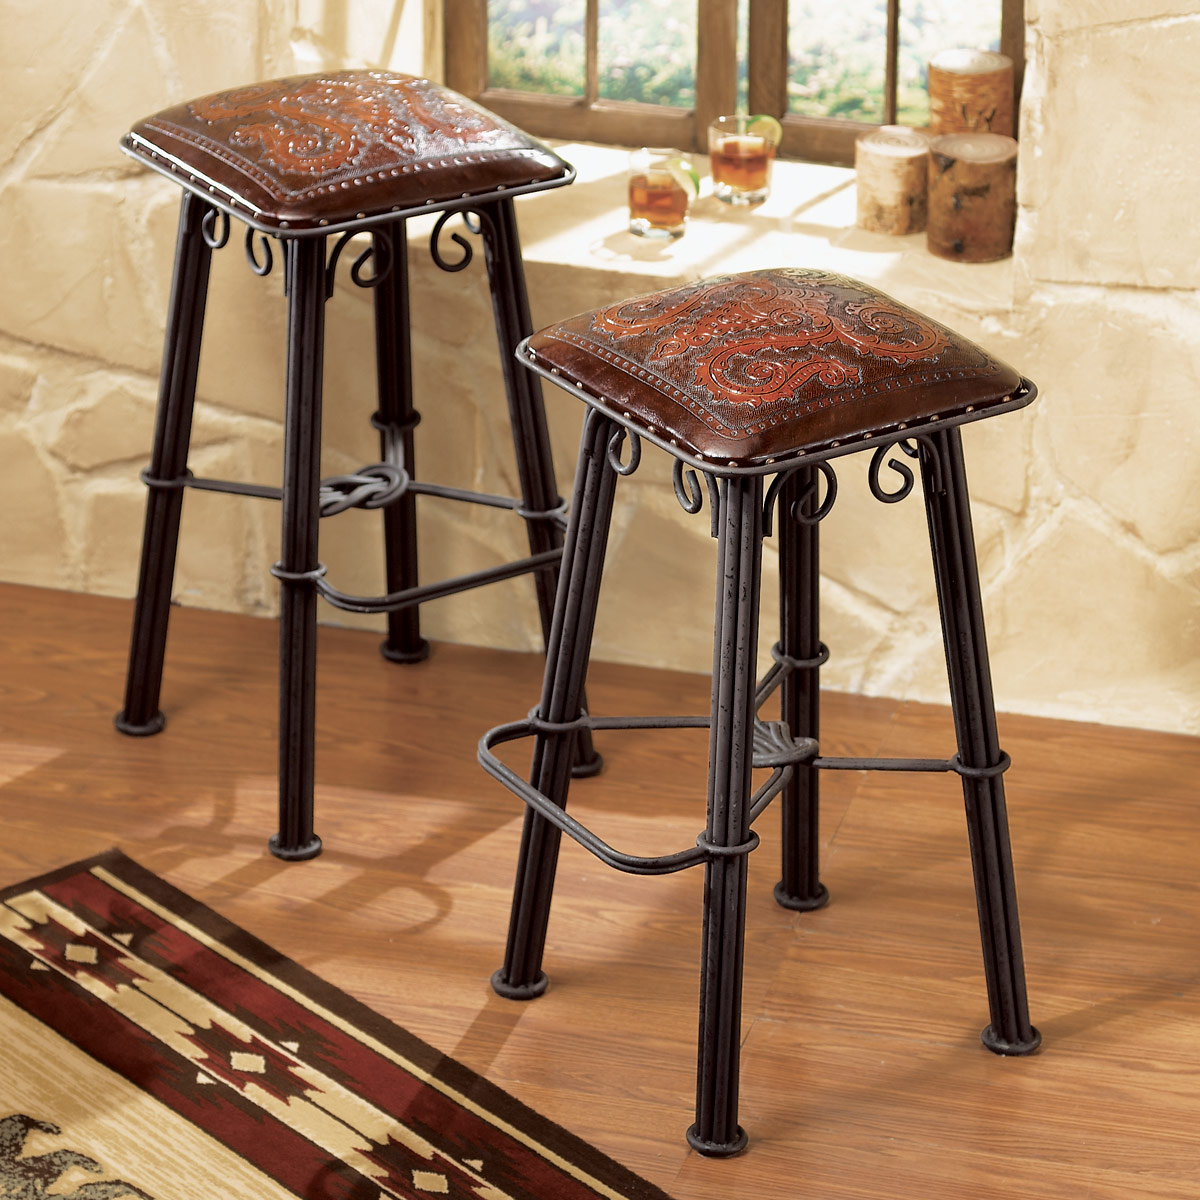 Iron Counter Stool Tooled Leather Seat